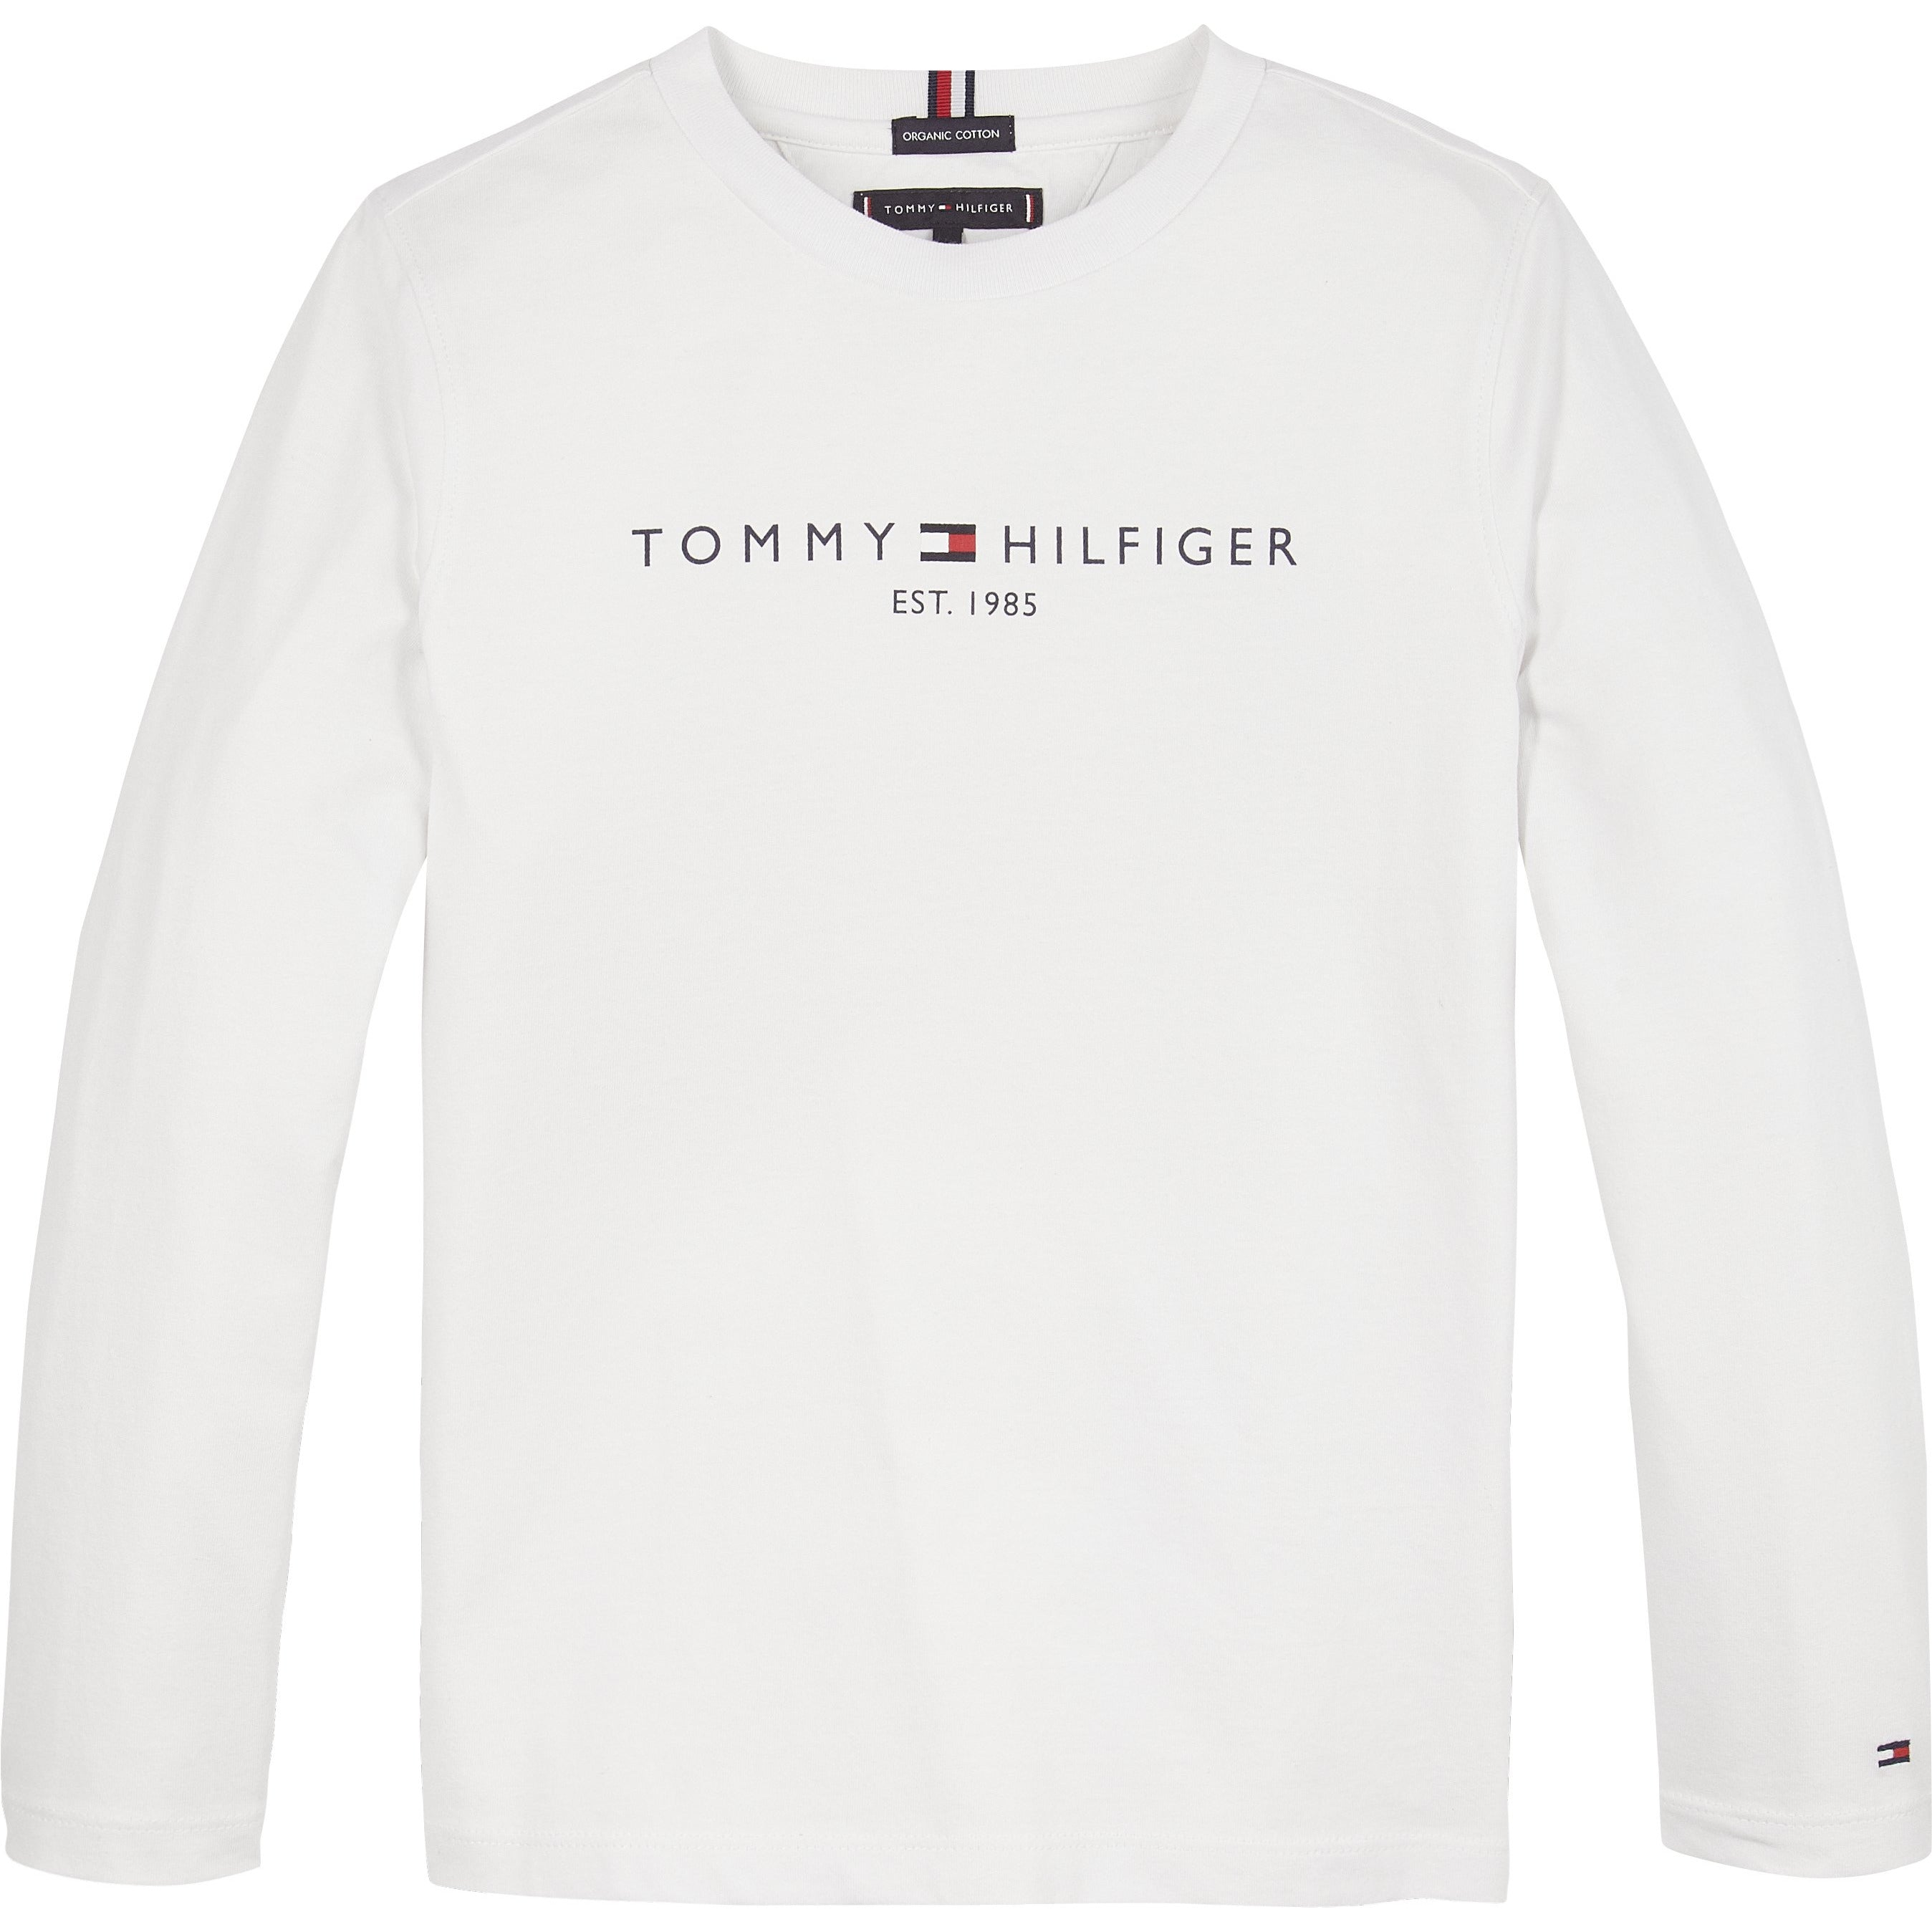 Tommy Hilfiger - Essential tee l/s, white - 3